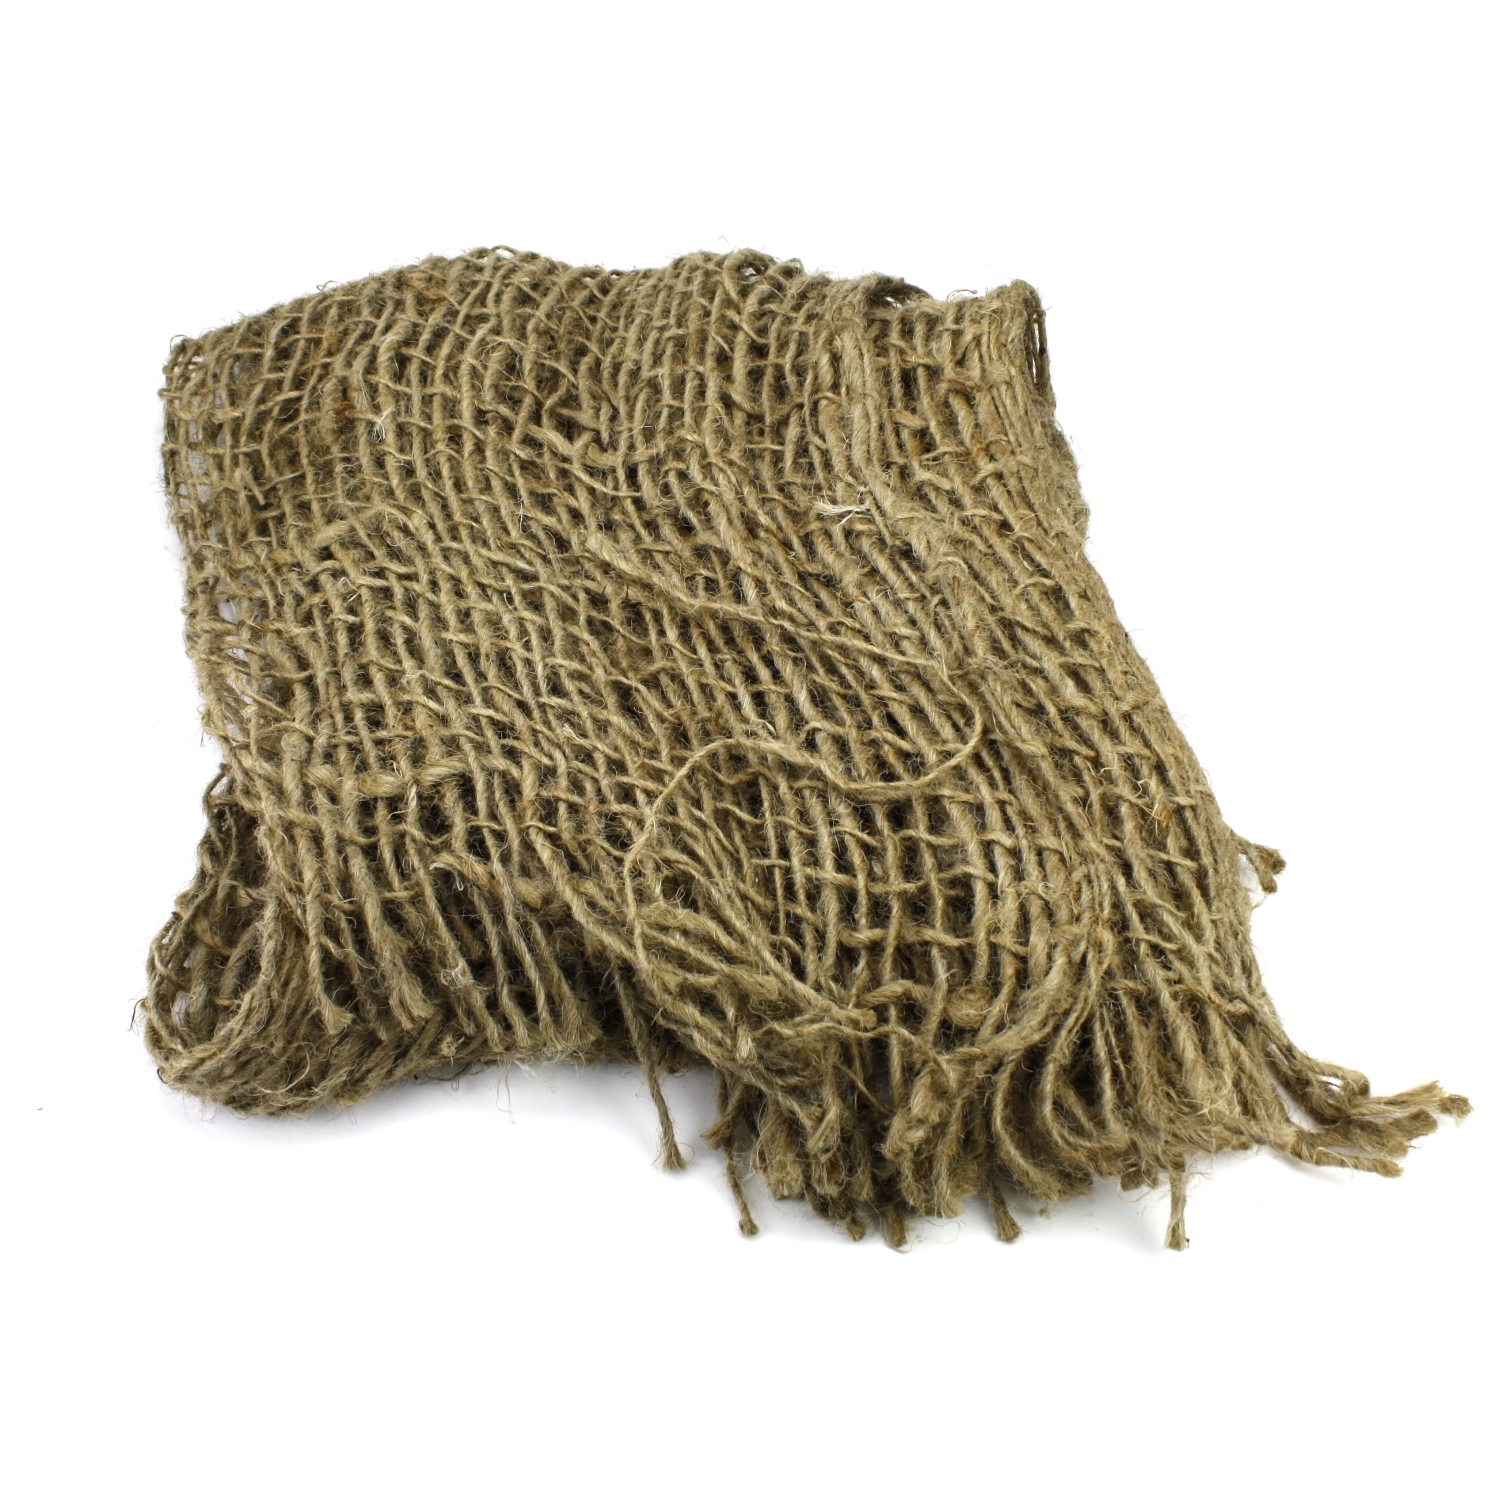 "Natural Jute Netting 48"" x 10 Yards"